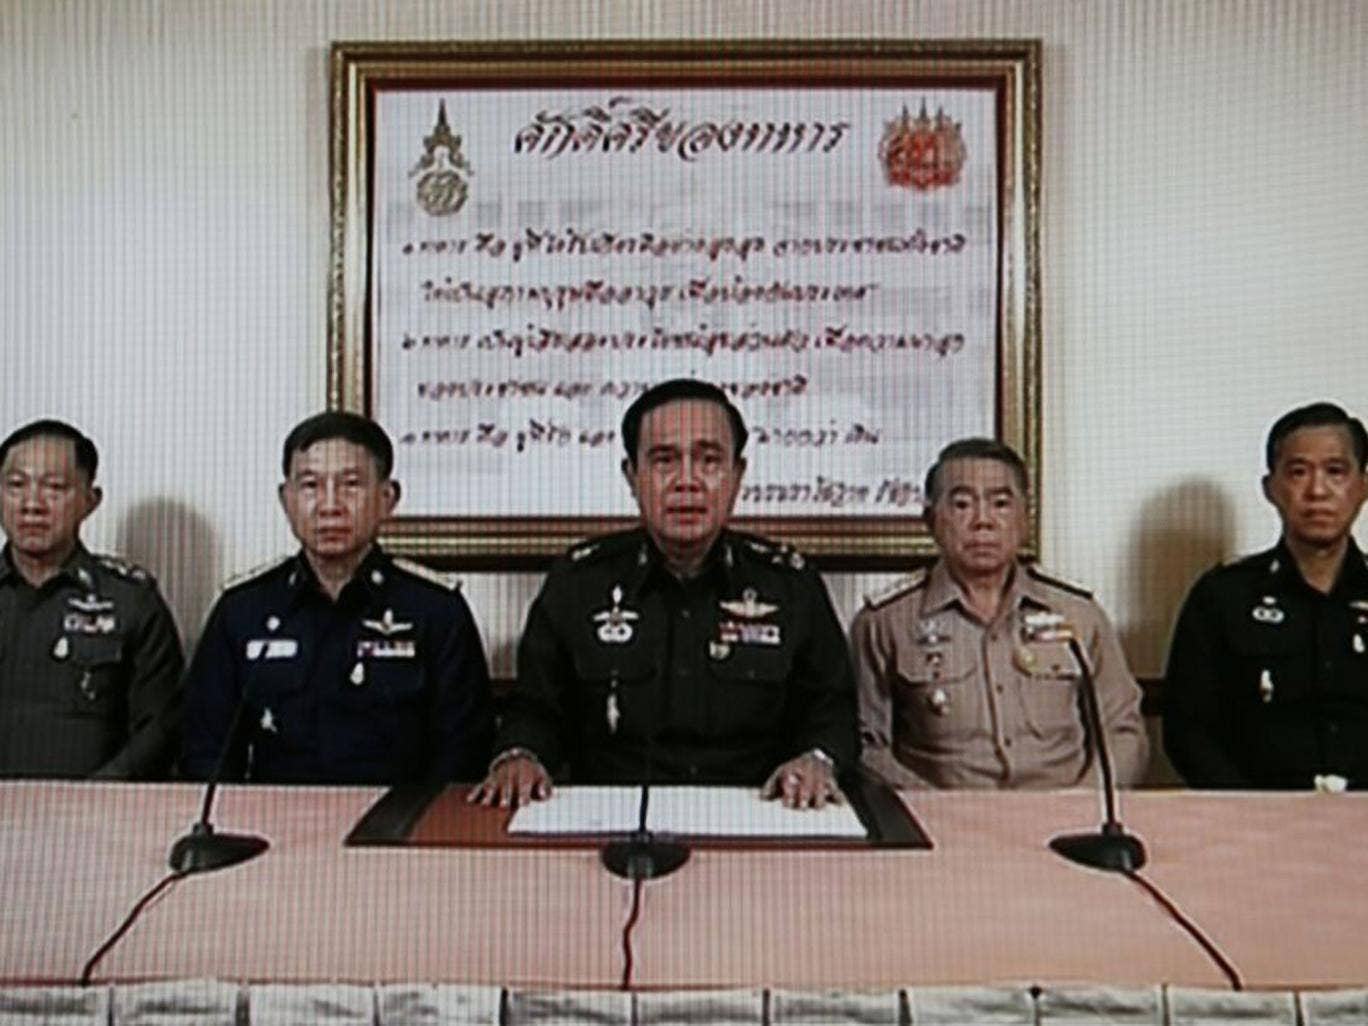 TV grab shows Army Chief General Prayuth Chan-ocha (C) speaking next to Navy Chief Adm Narong Pipattanasai (2-R), Air Chief Marshall Prachin Chantong (2-L), Thai Police Chief Adul Saengsingkaew (L) and identified high rank military officer (R) during a m